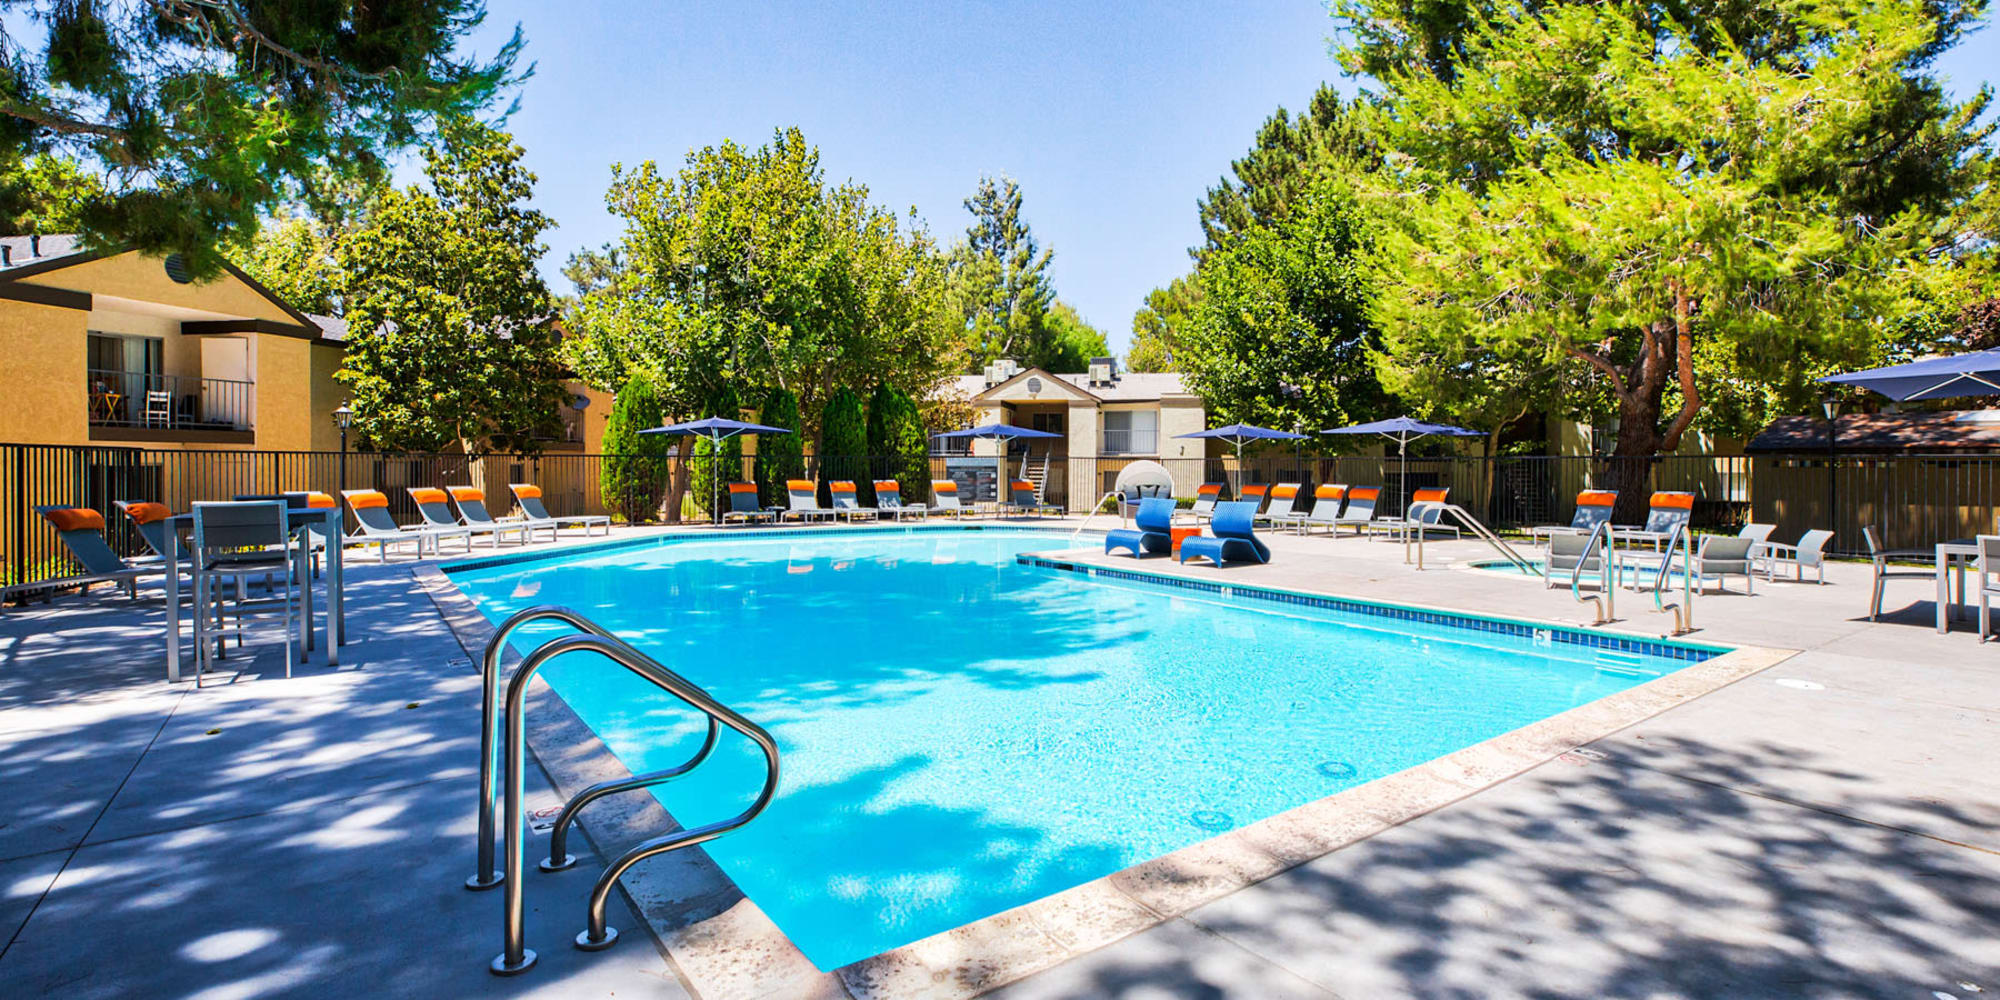 Mature trees providing some shade at the pool at Mountain Vista in Victorville, California